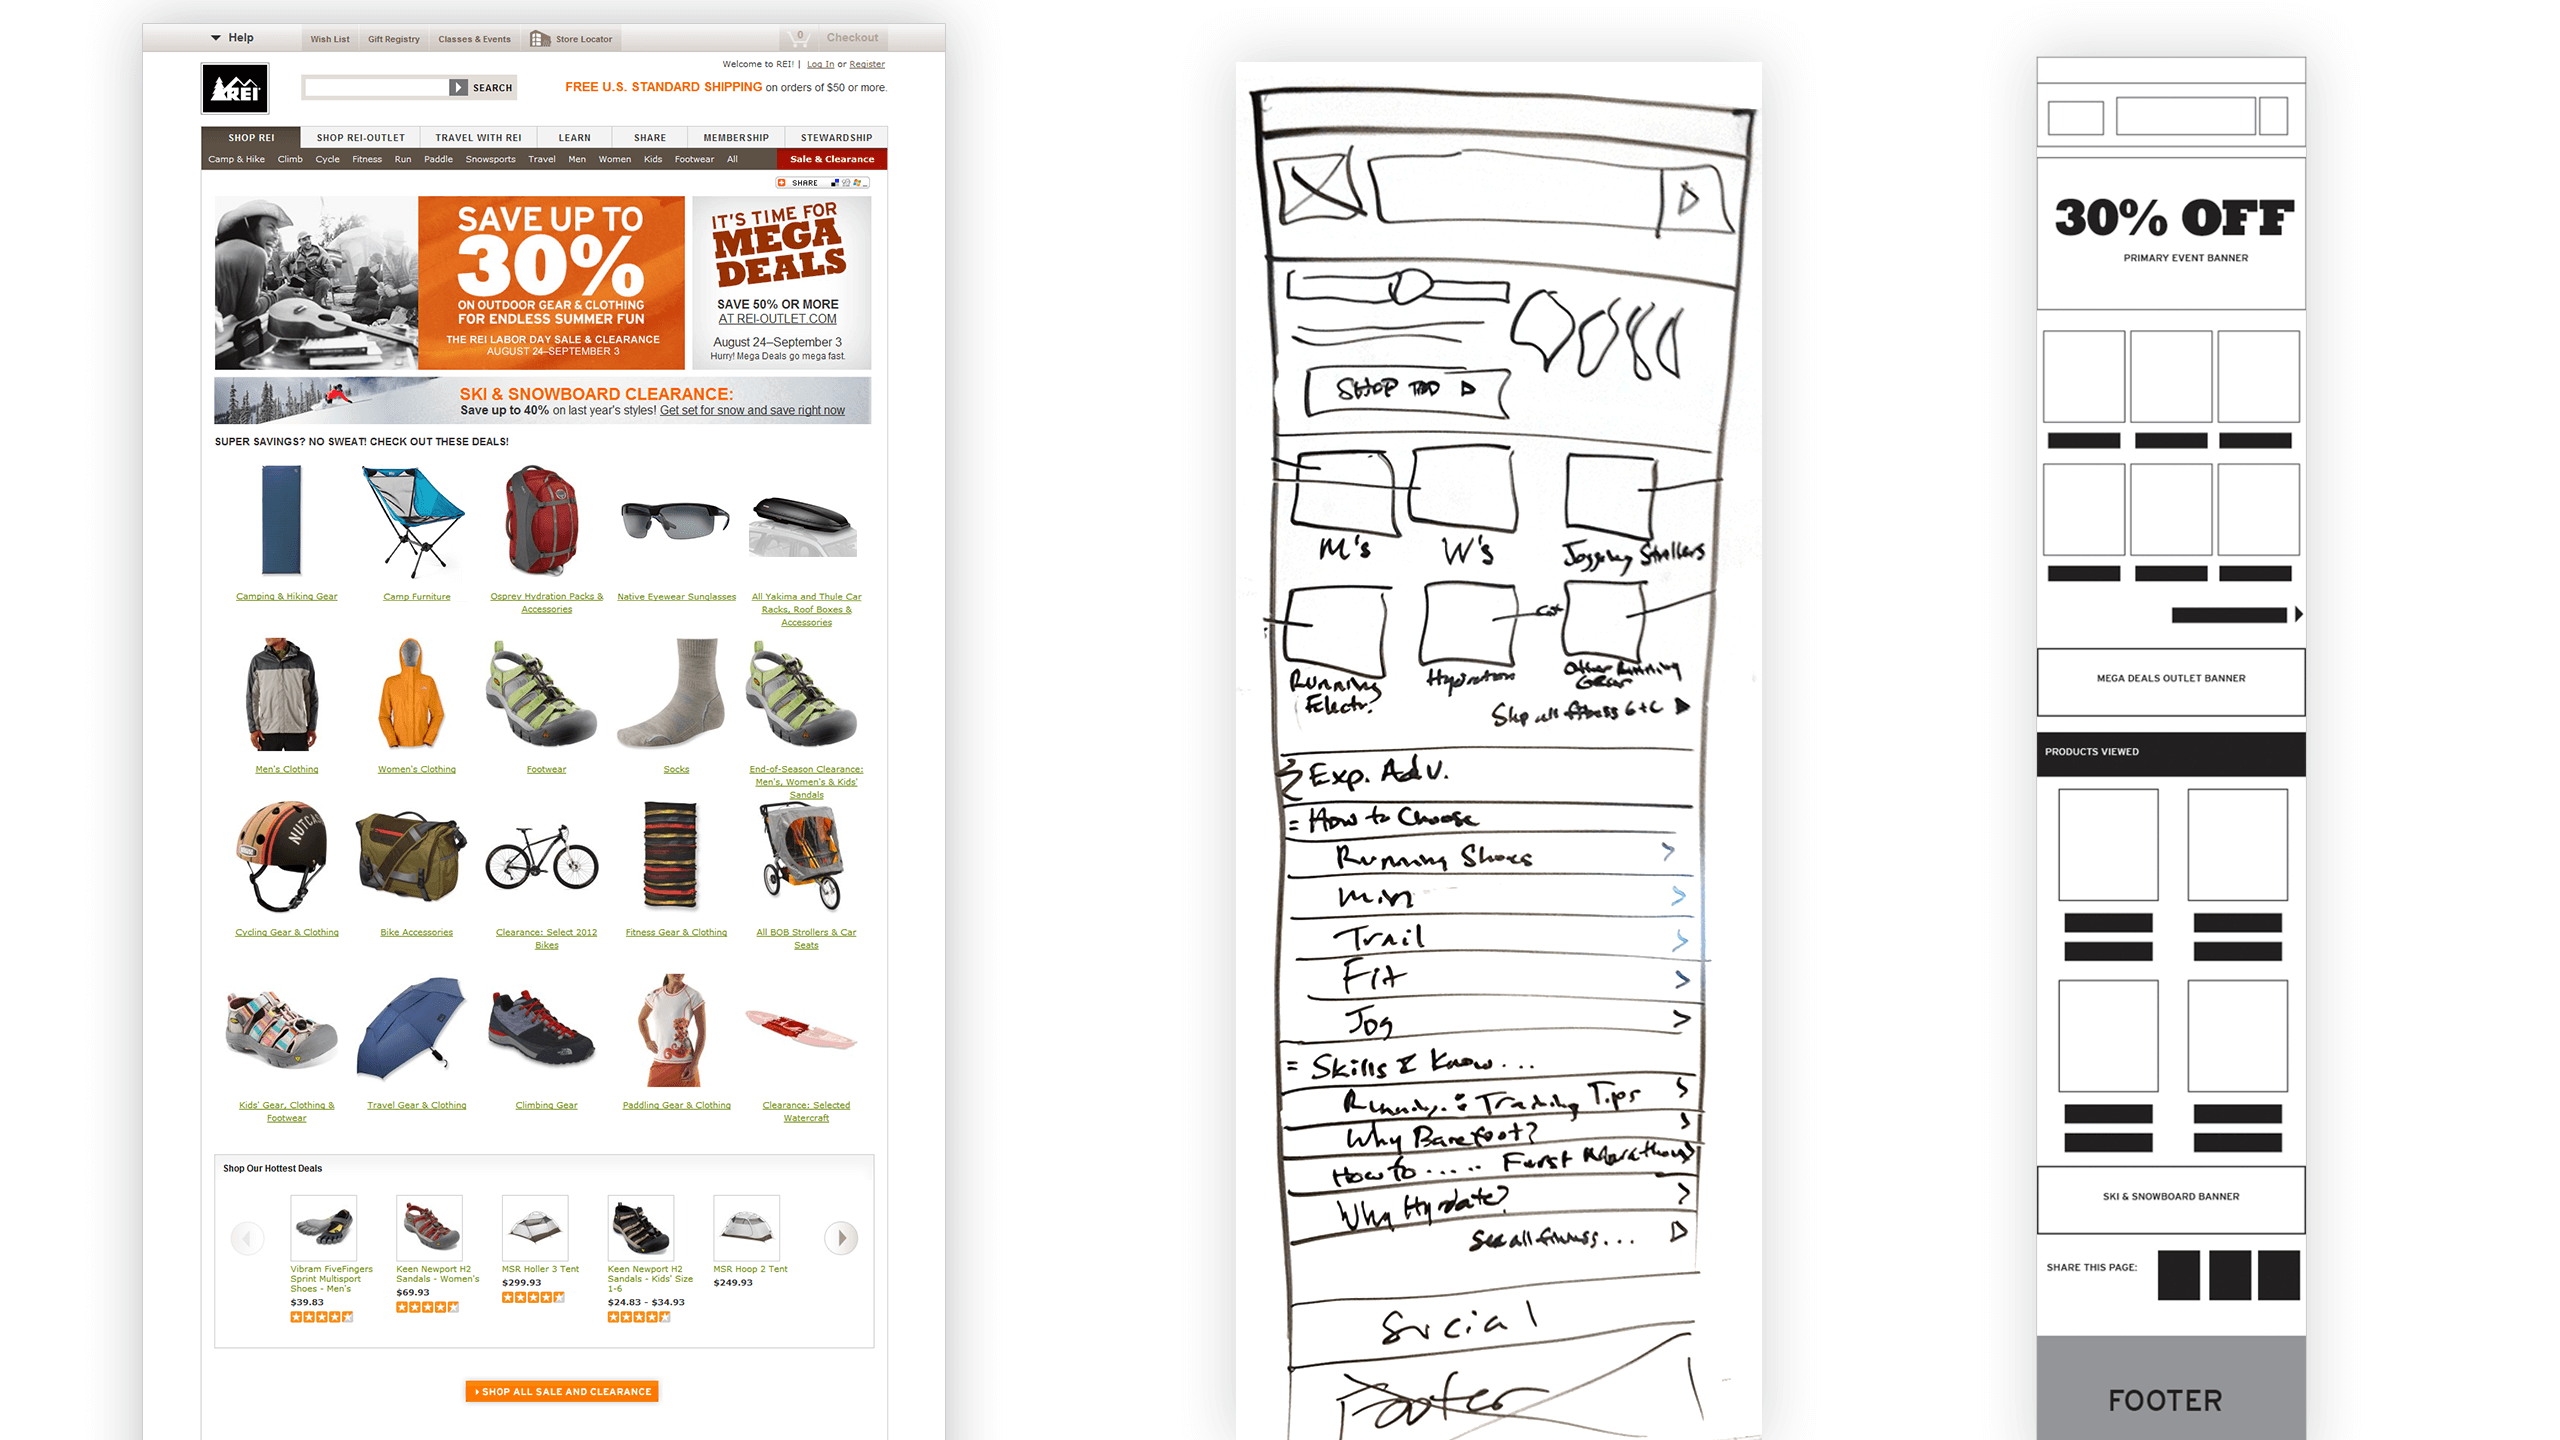 Design process, full site image, whiteboard sketch, and wireframe of mobile experience